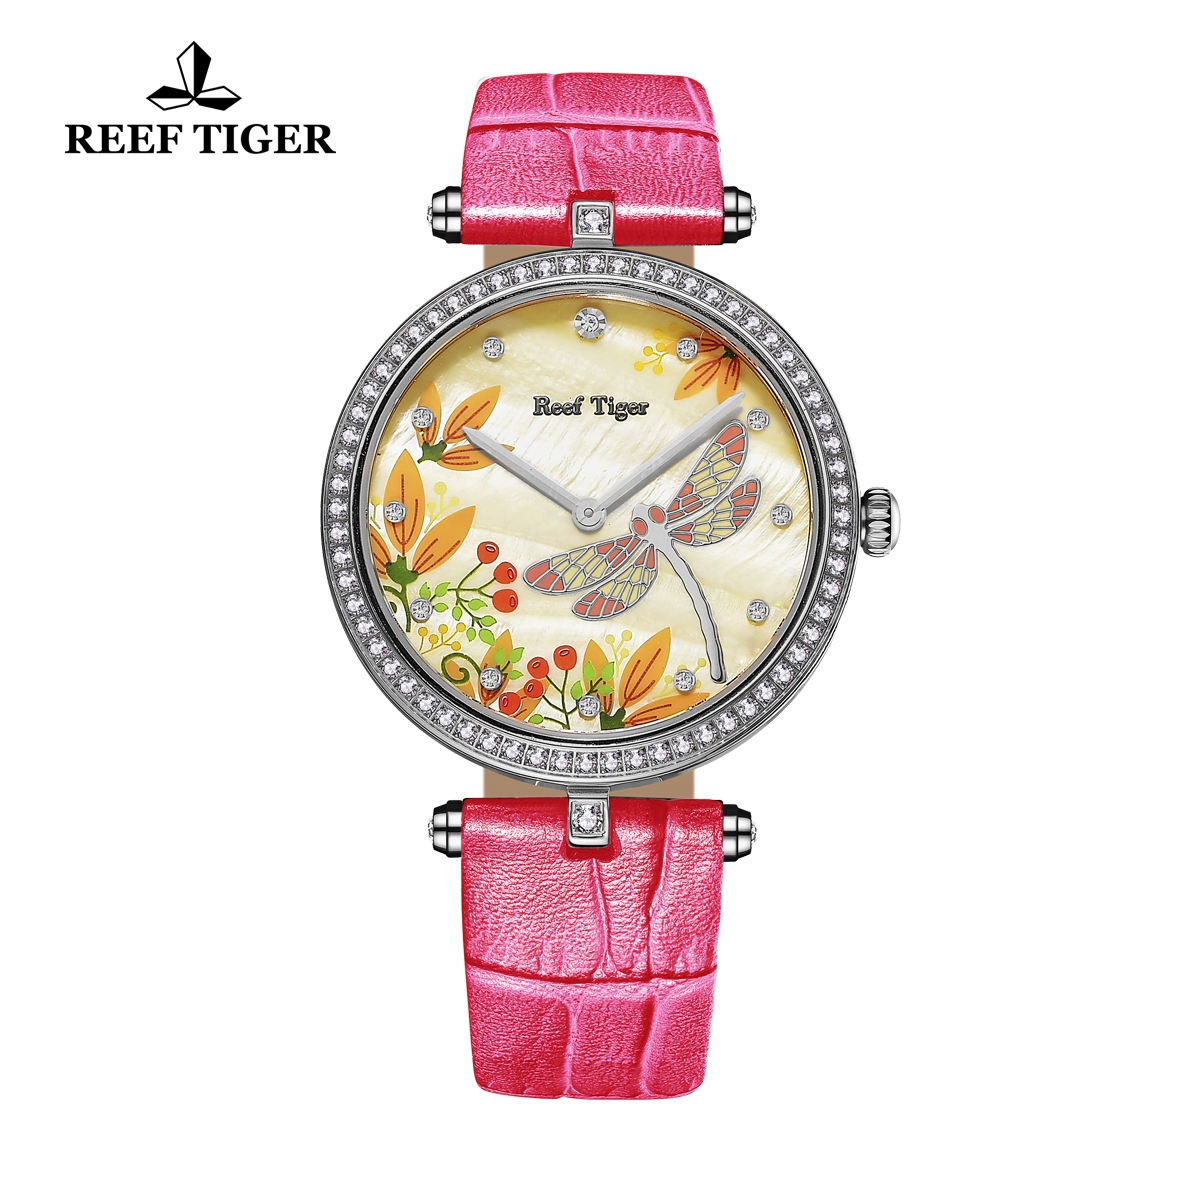 Reef Tiger Fashion Watch Yellow MOP Dial Quartz Stainless Steel Lady Watch RGA151-YGRD